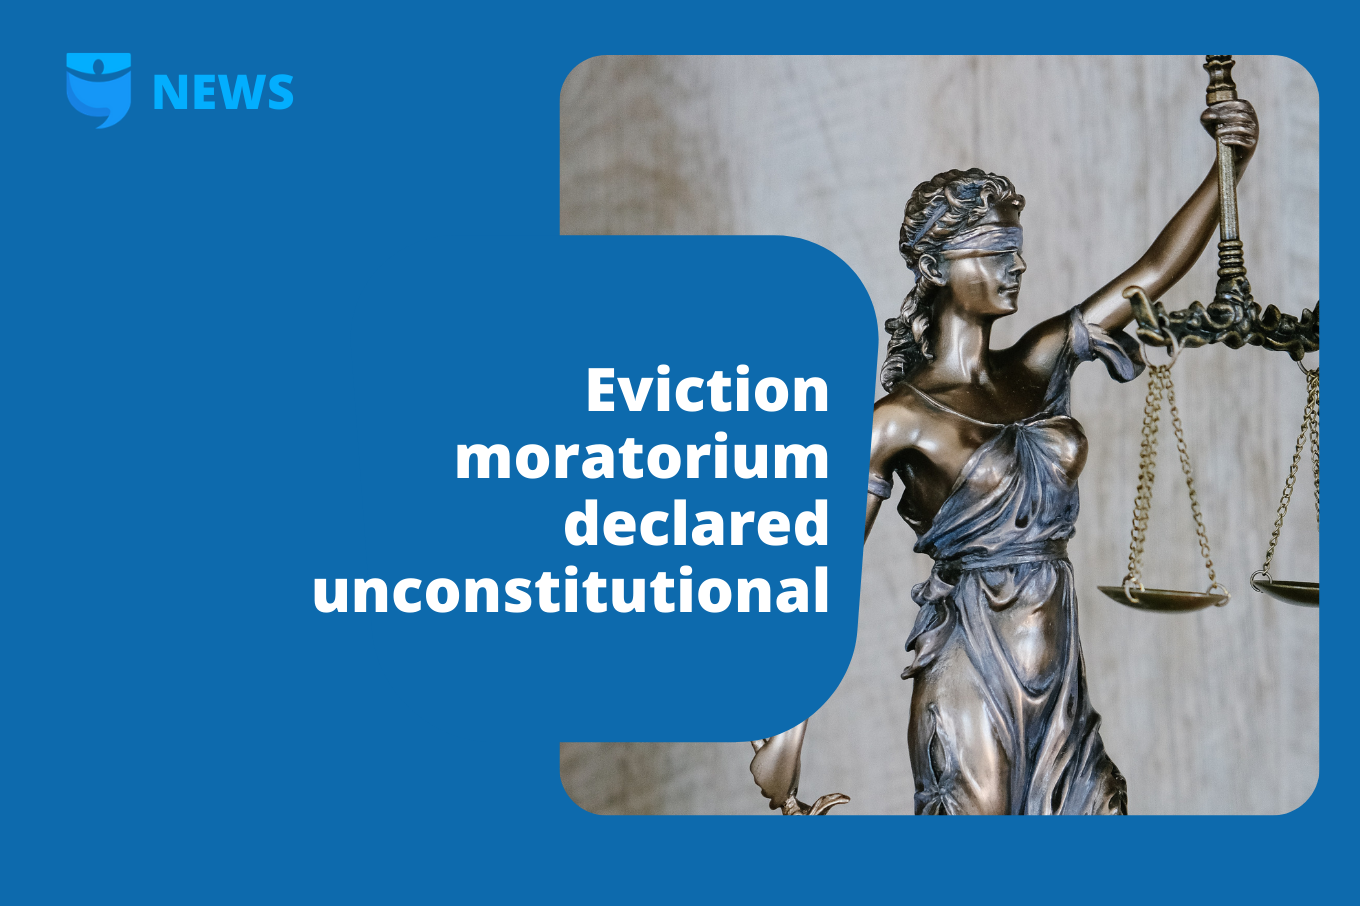 CDC Eviction Moratorium Ruled Unconstitutional—How Will This Affect Investors?